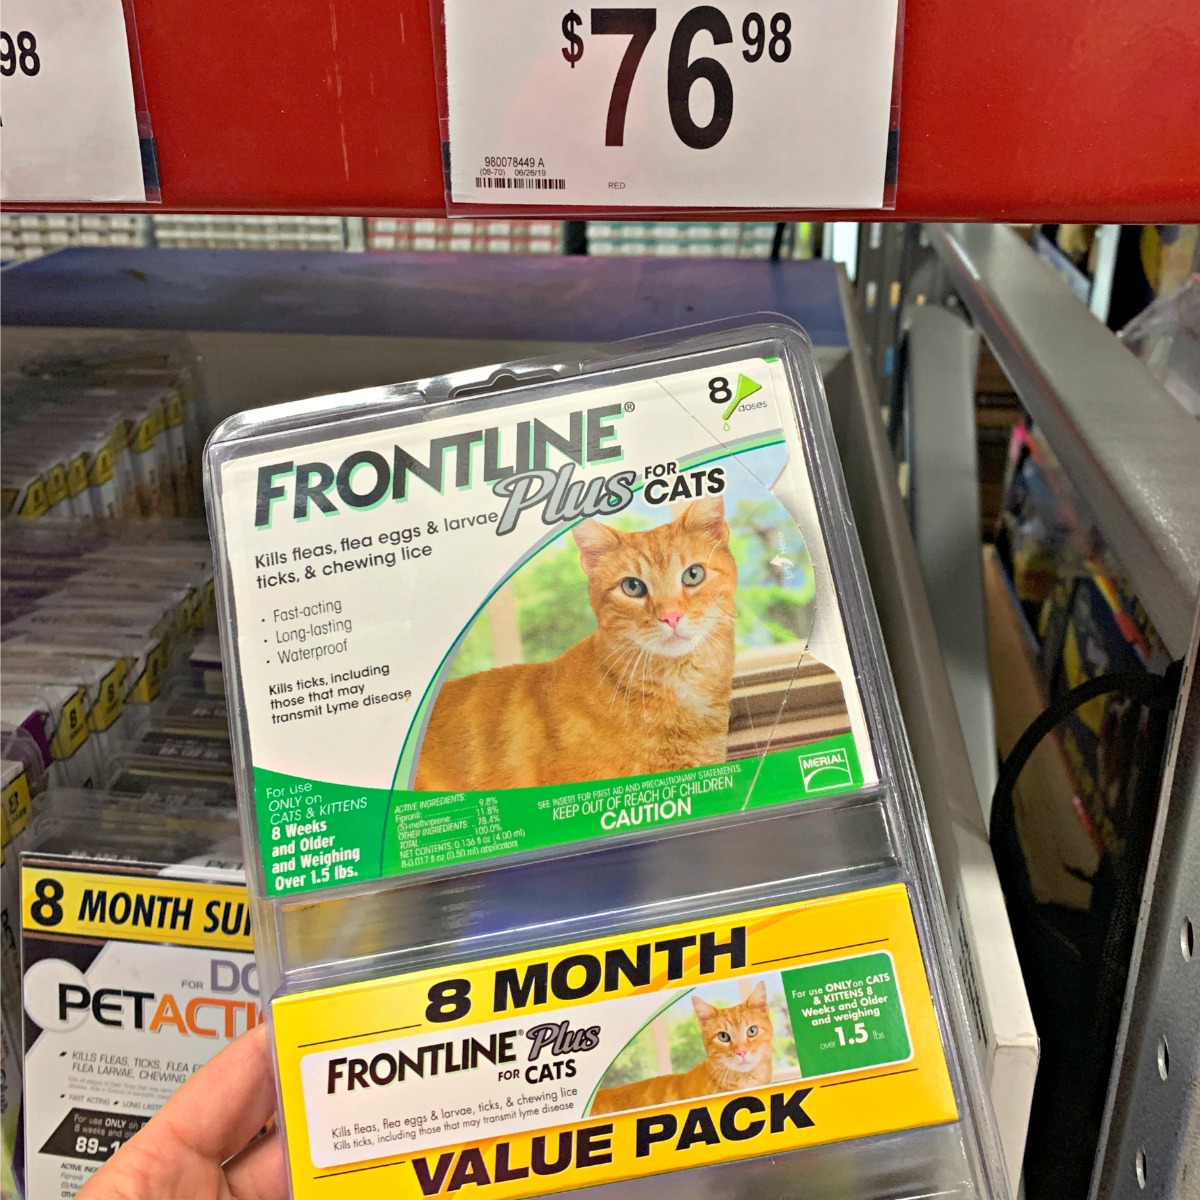 Frontline plus for cats product at Sam's Club